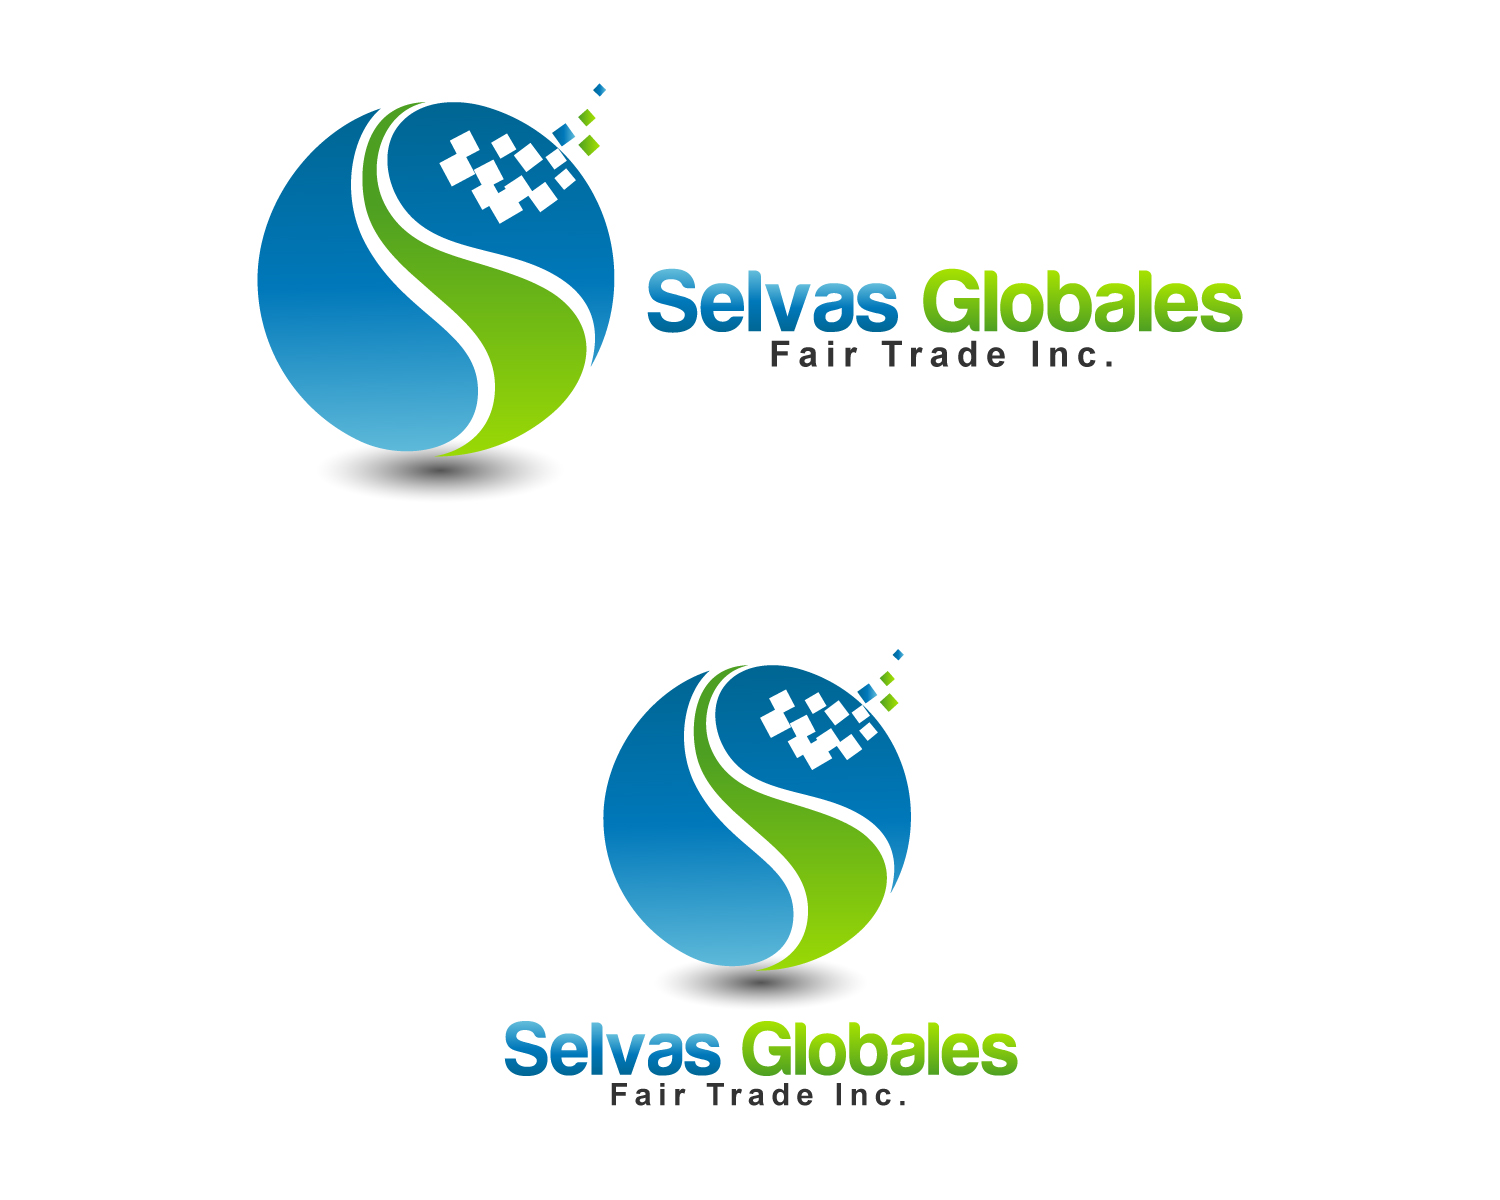 Logo Design by Jagdeep Singh - Entry No. 27 in the Logo Design Contest Captivating Logo Design for Selvas Globales Fair Trade Inc..